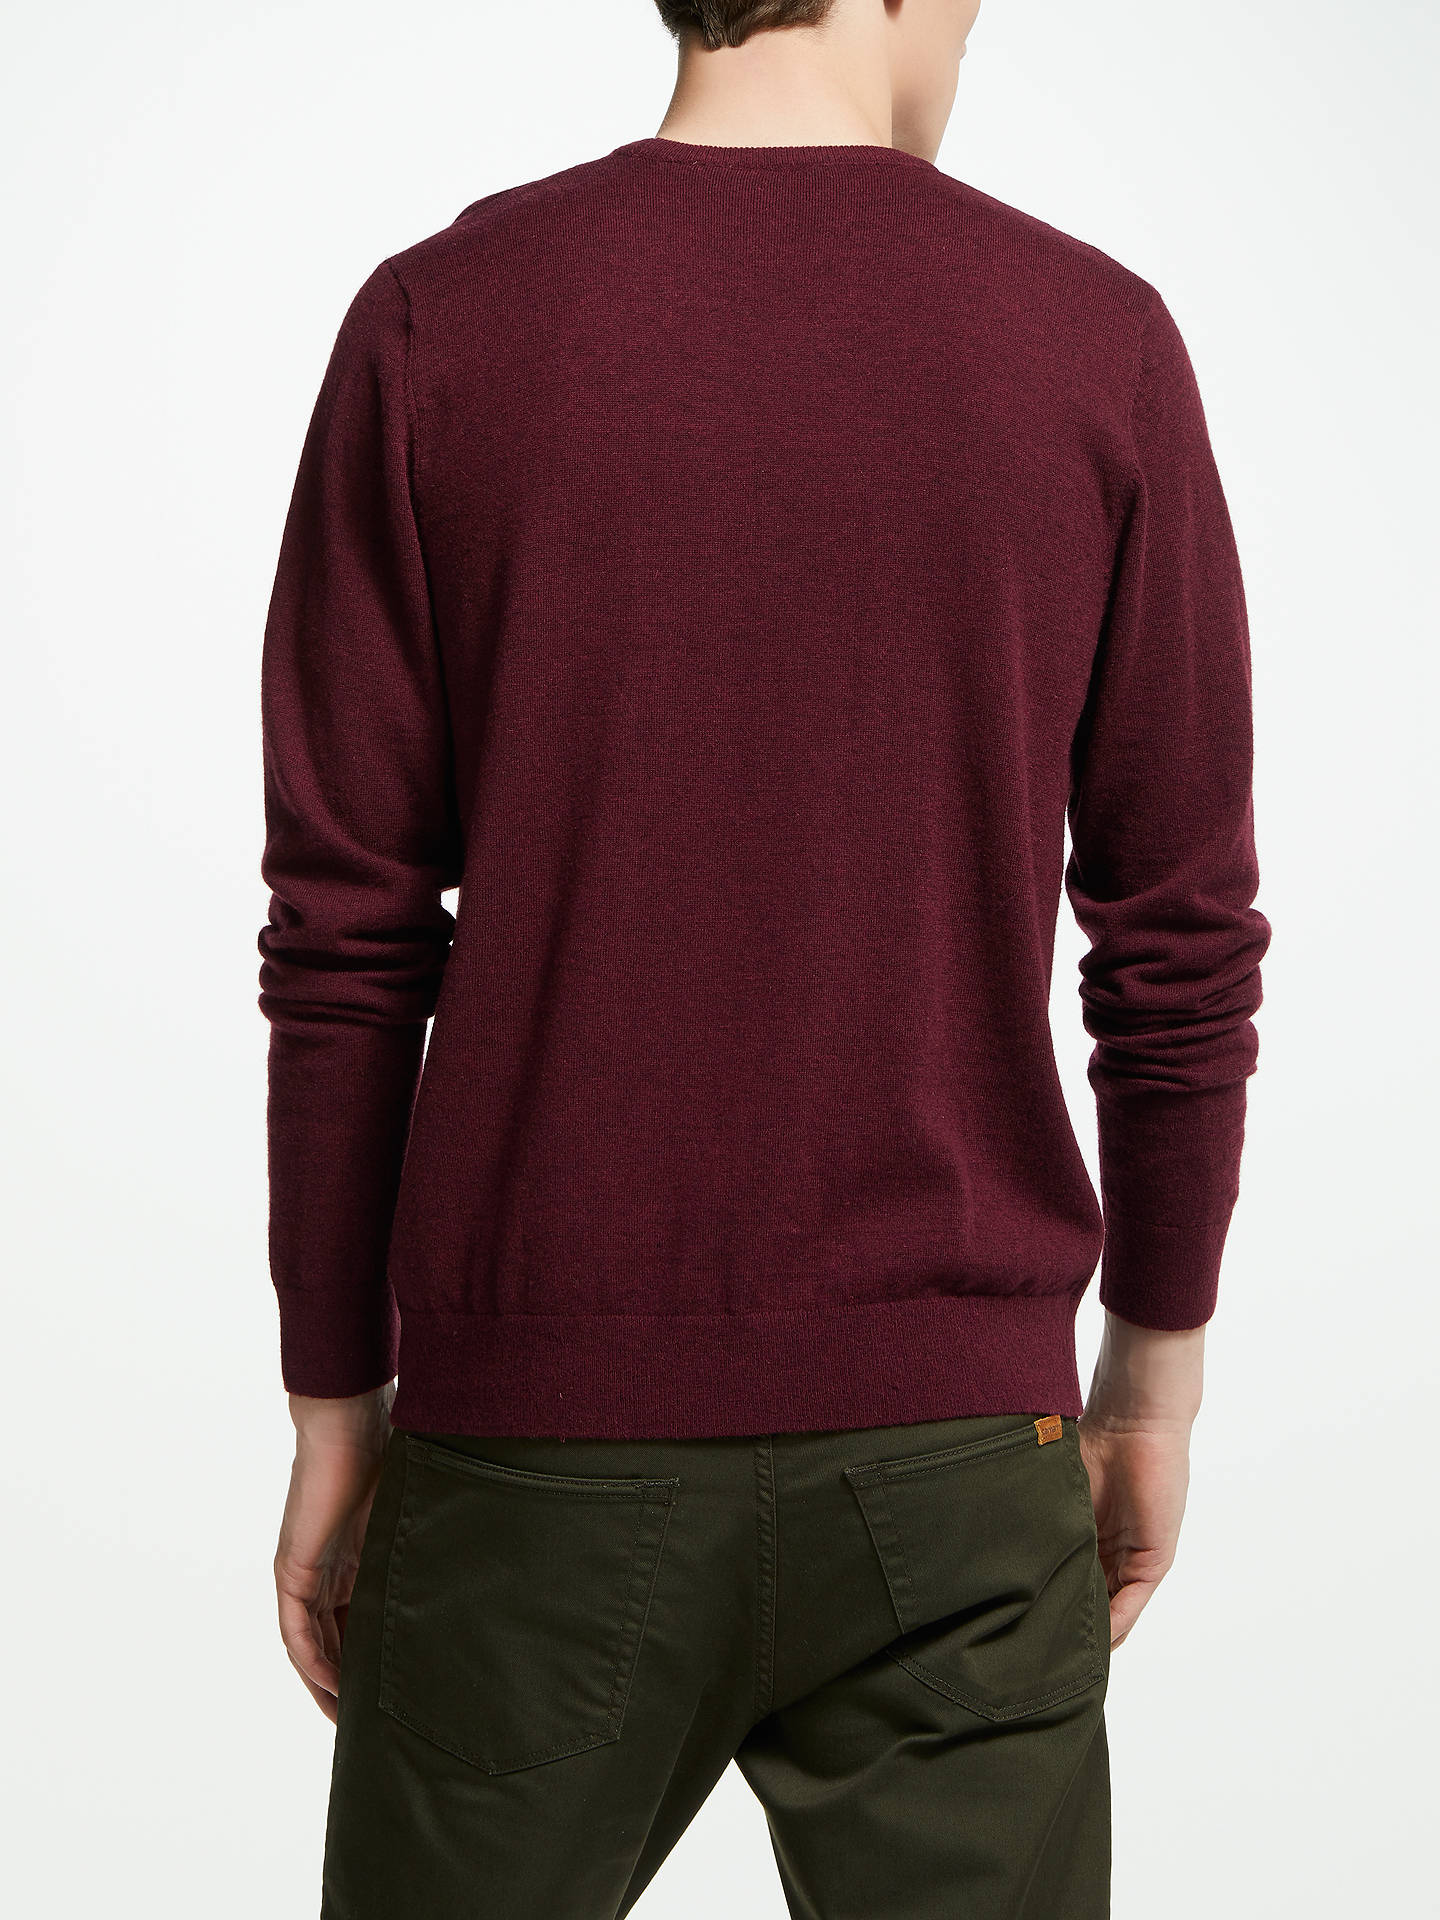 Buy Carhartt WIP Playoff Knit Jumper, Mulberry Heather, M Online at johnlewis.com